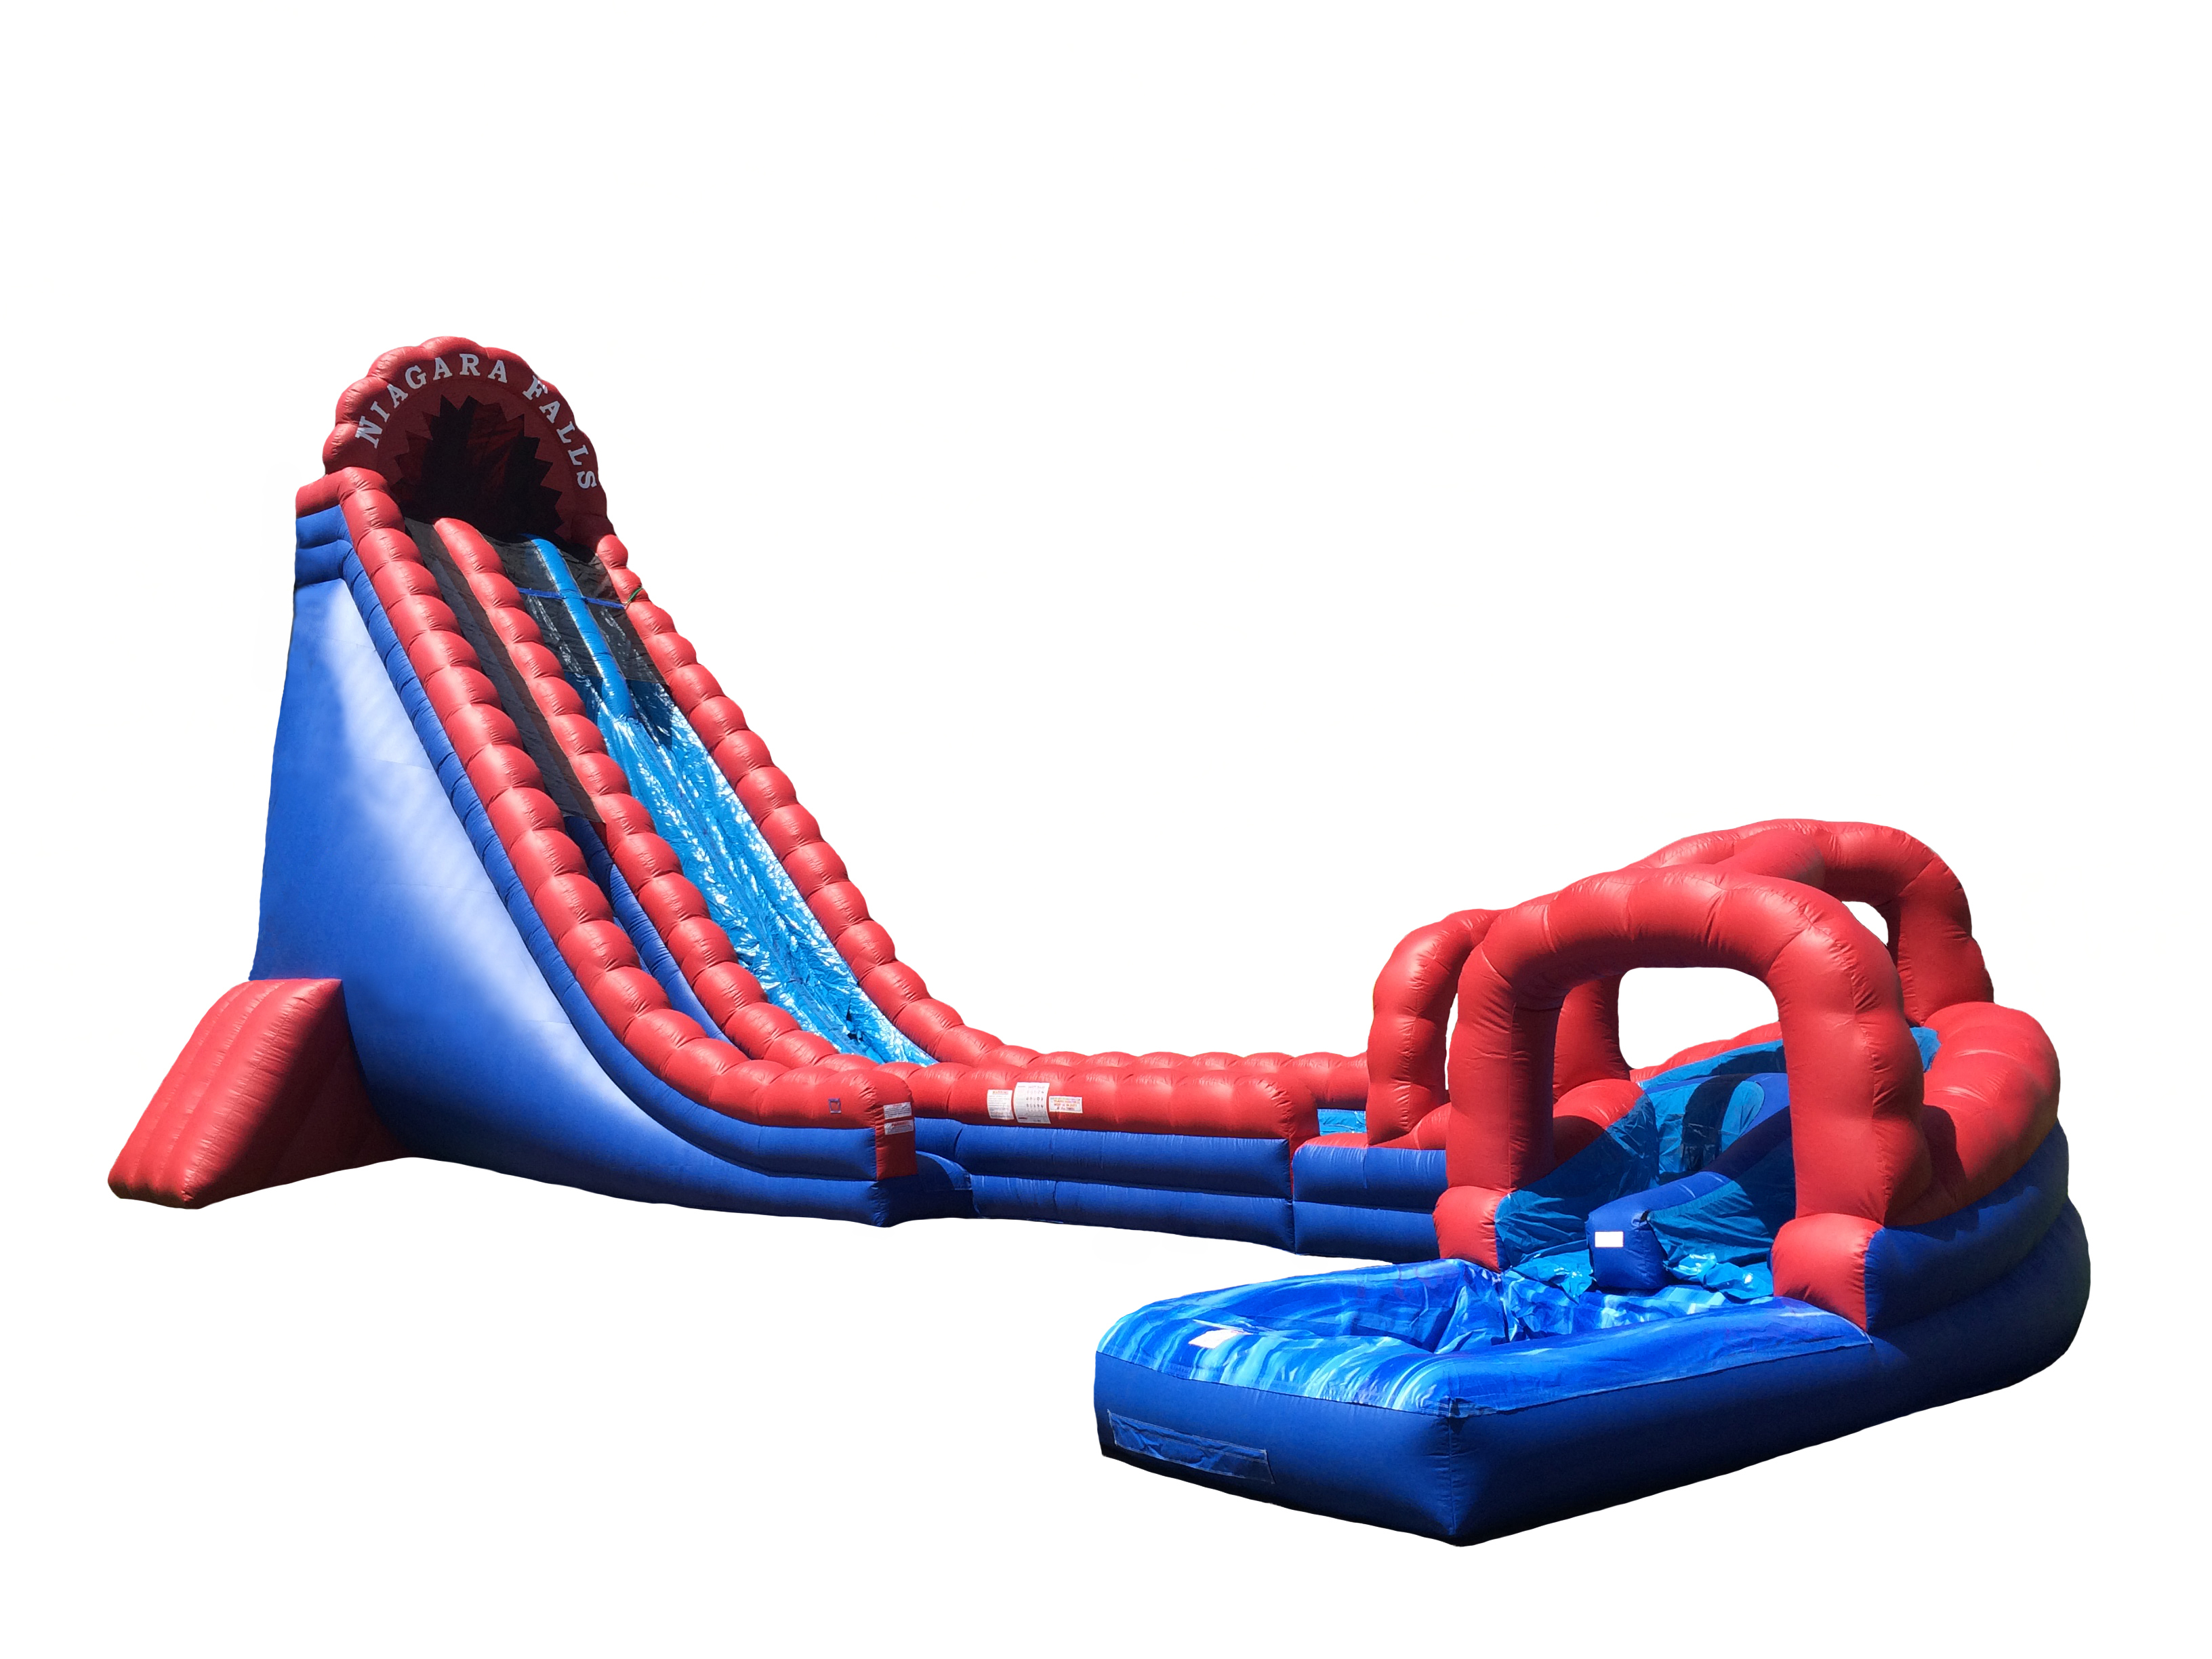 extremely fun bounce house water slide rentals pompano beach fl